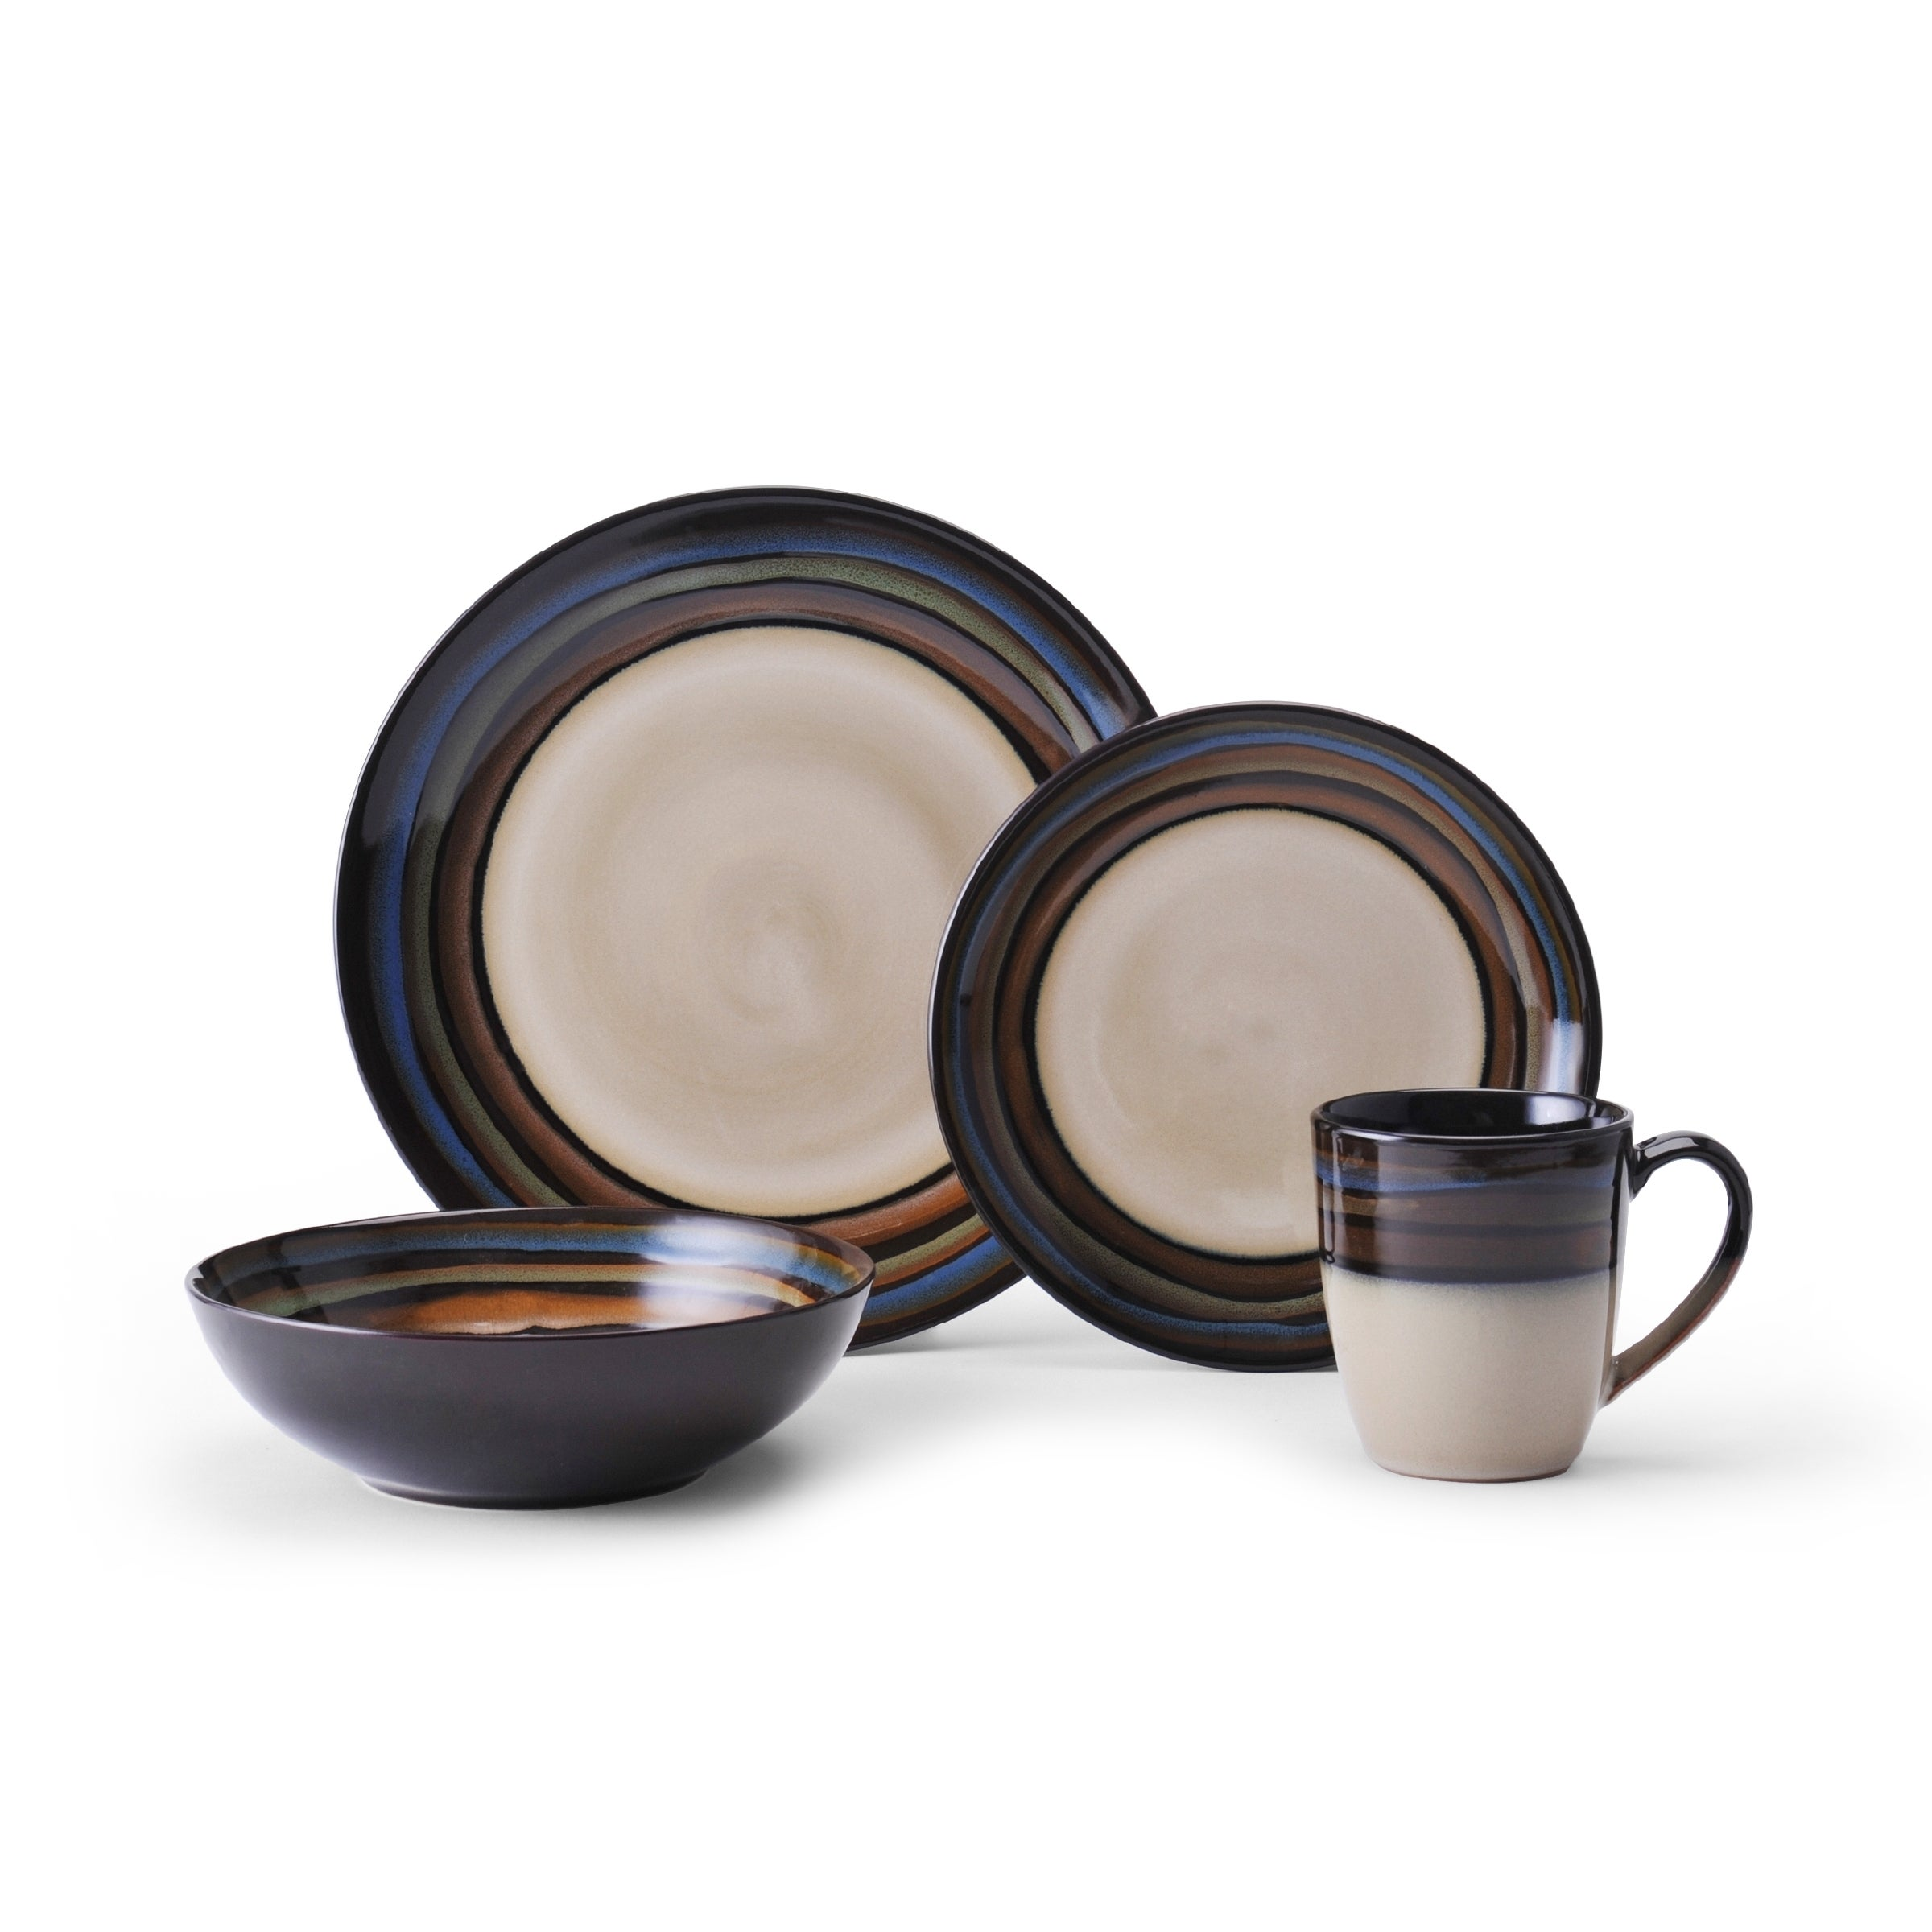 Galaxy Red 16-piece Dinnerware Set (Service for 4) - Free Shipping Today - Overstock - 17159319  sc 1 st  Overstock.com & Galaxy Red 16-piece Dinnerware Set (Service for 4) - Free Shipping ...